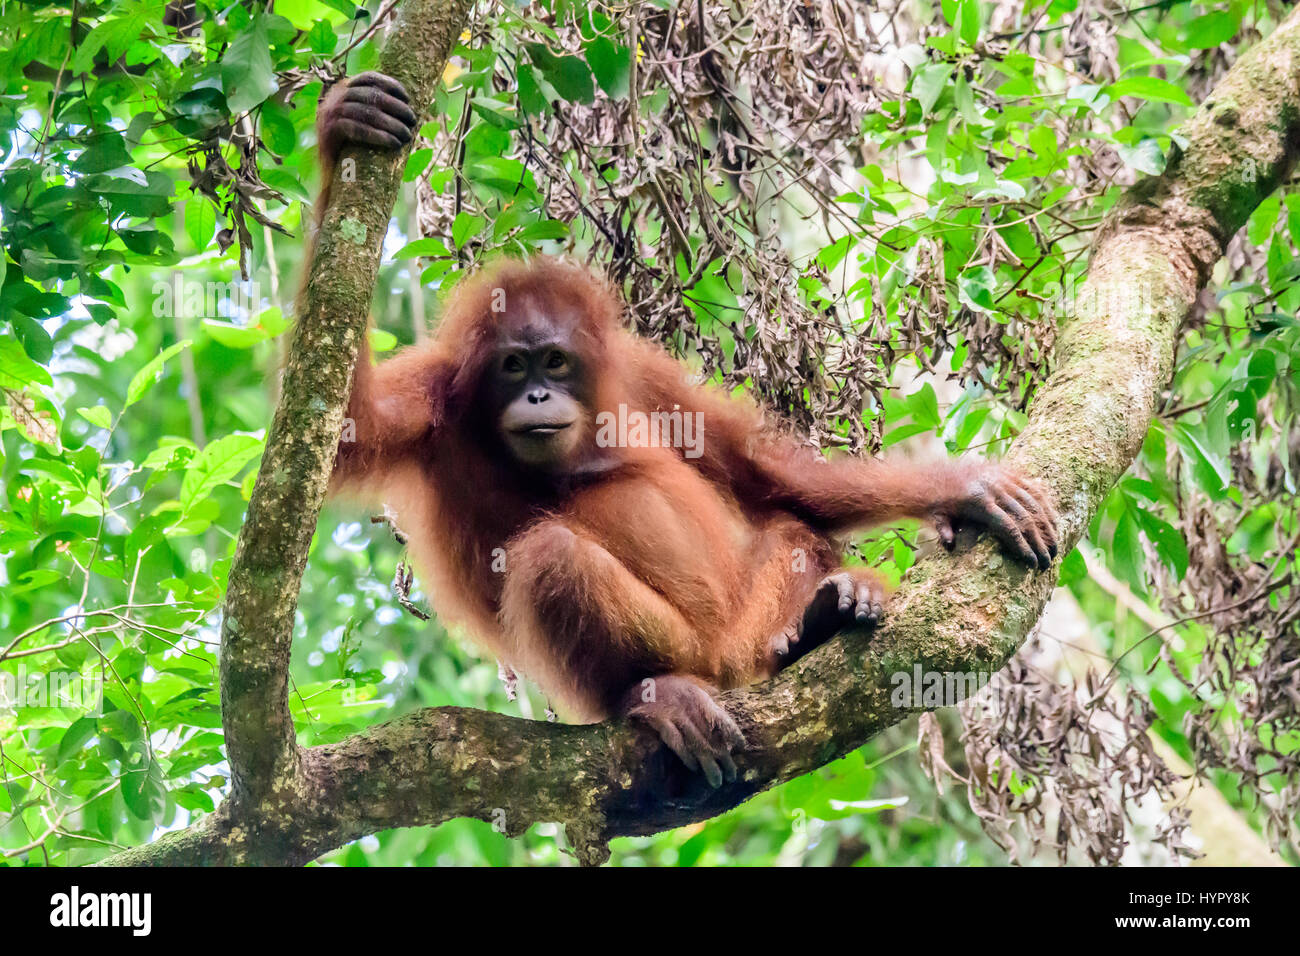 Chilled out Orangutan juvenile perched in a tree - Stock Image